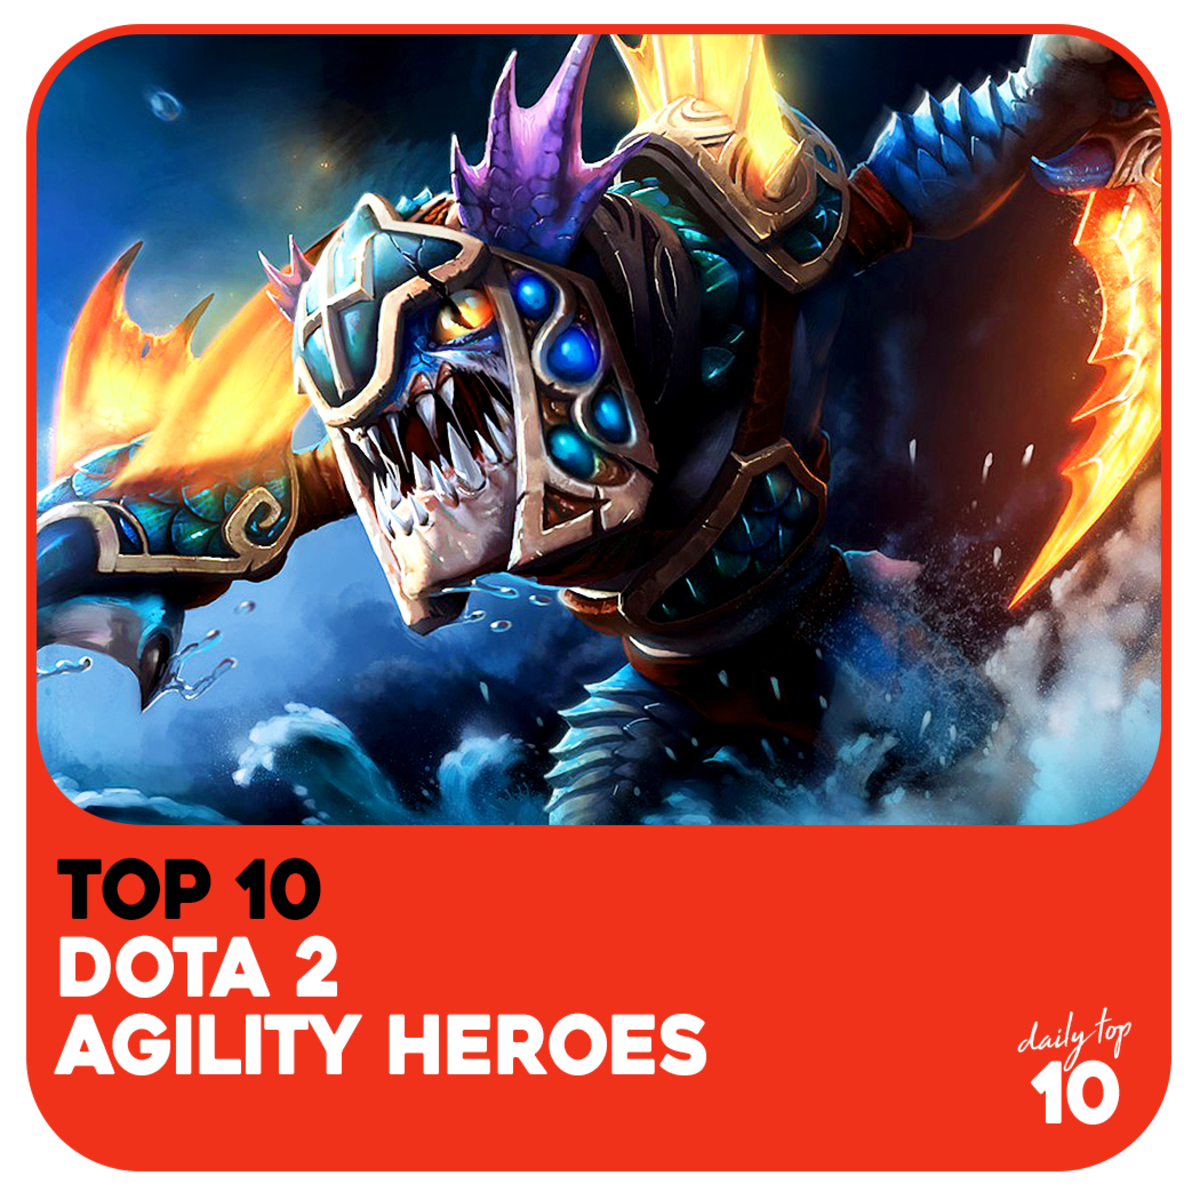 Top 10 Best Agility Dota 2 Heroes With Pictures (Updated 2019)